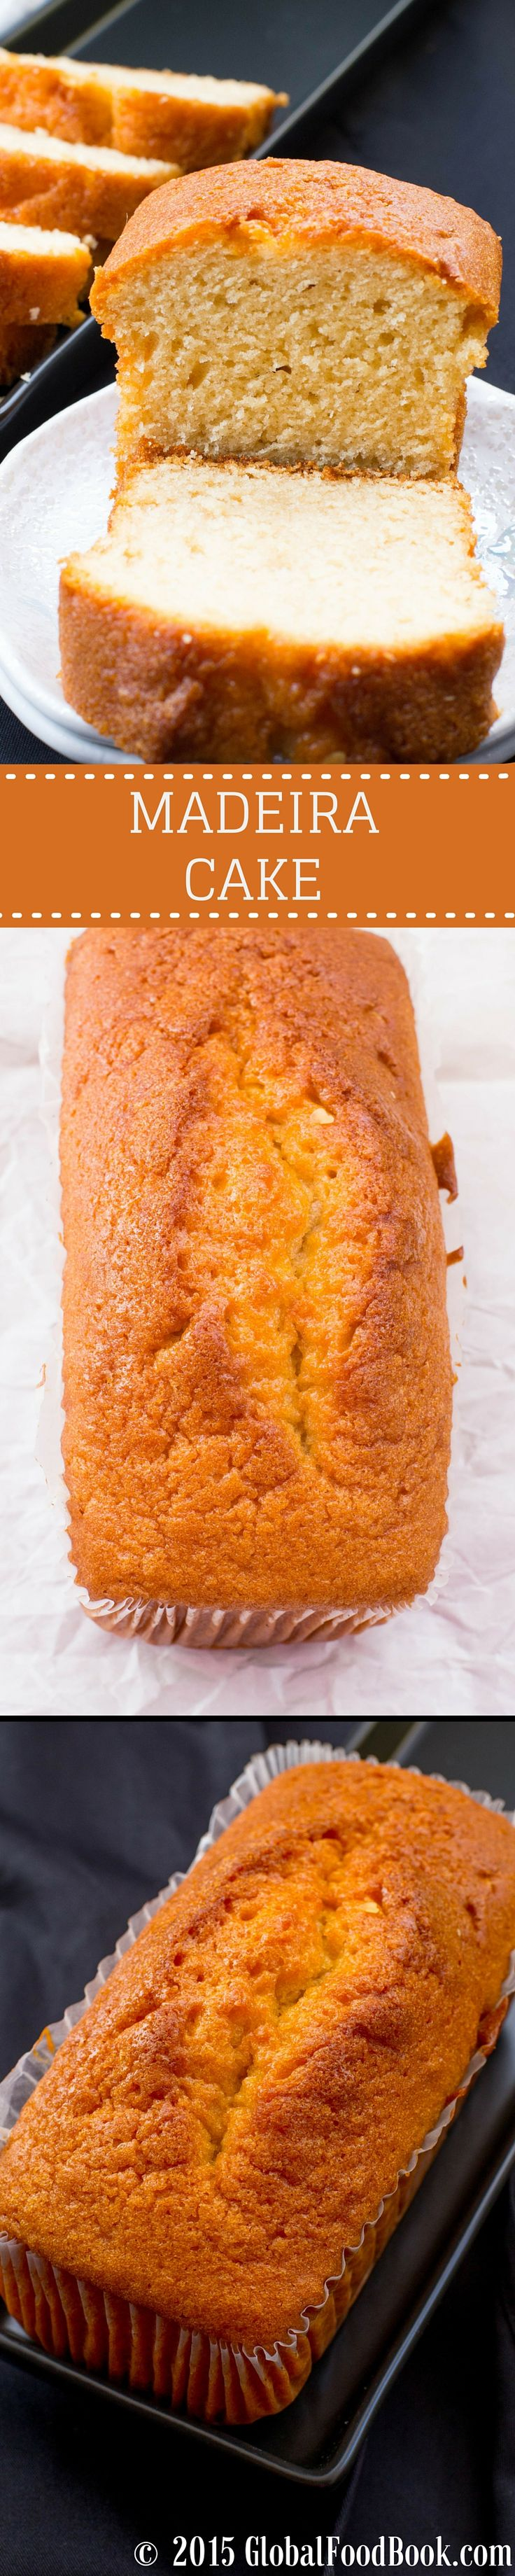 MADEIRA CAKE. Being one of my all favorite cakes, I can tell you for sure that this Madeira cake recipe is a no brainer at all. Although this Madeira cake is very easy to make but yet super delicious and tantalizing..  .